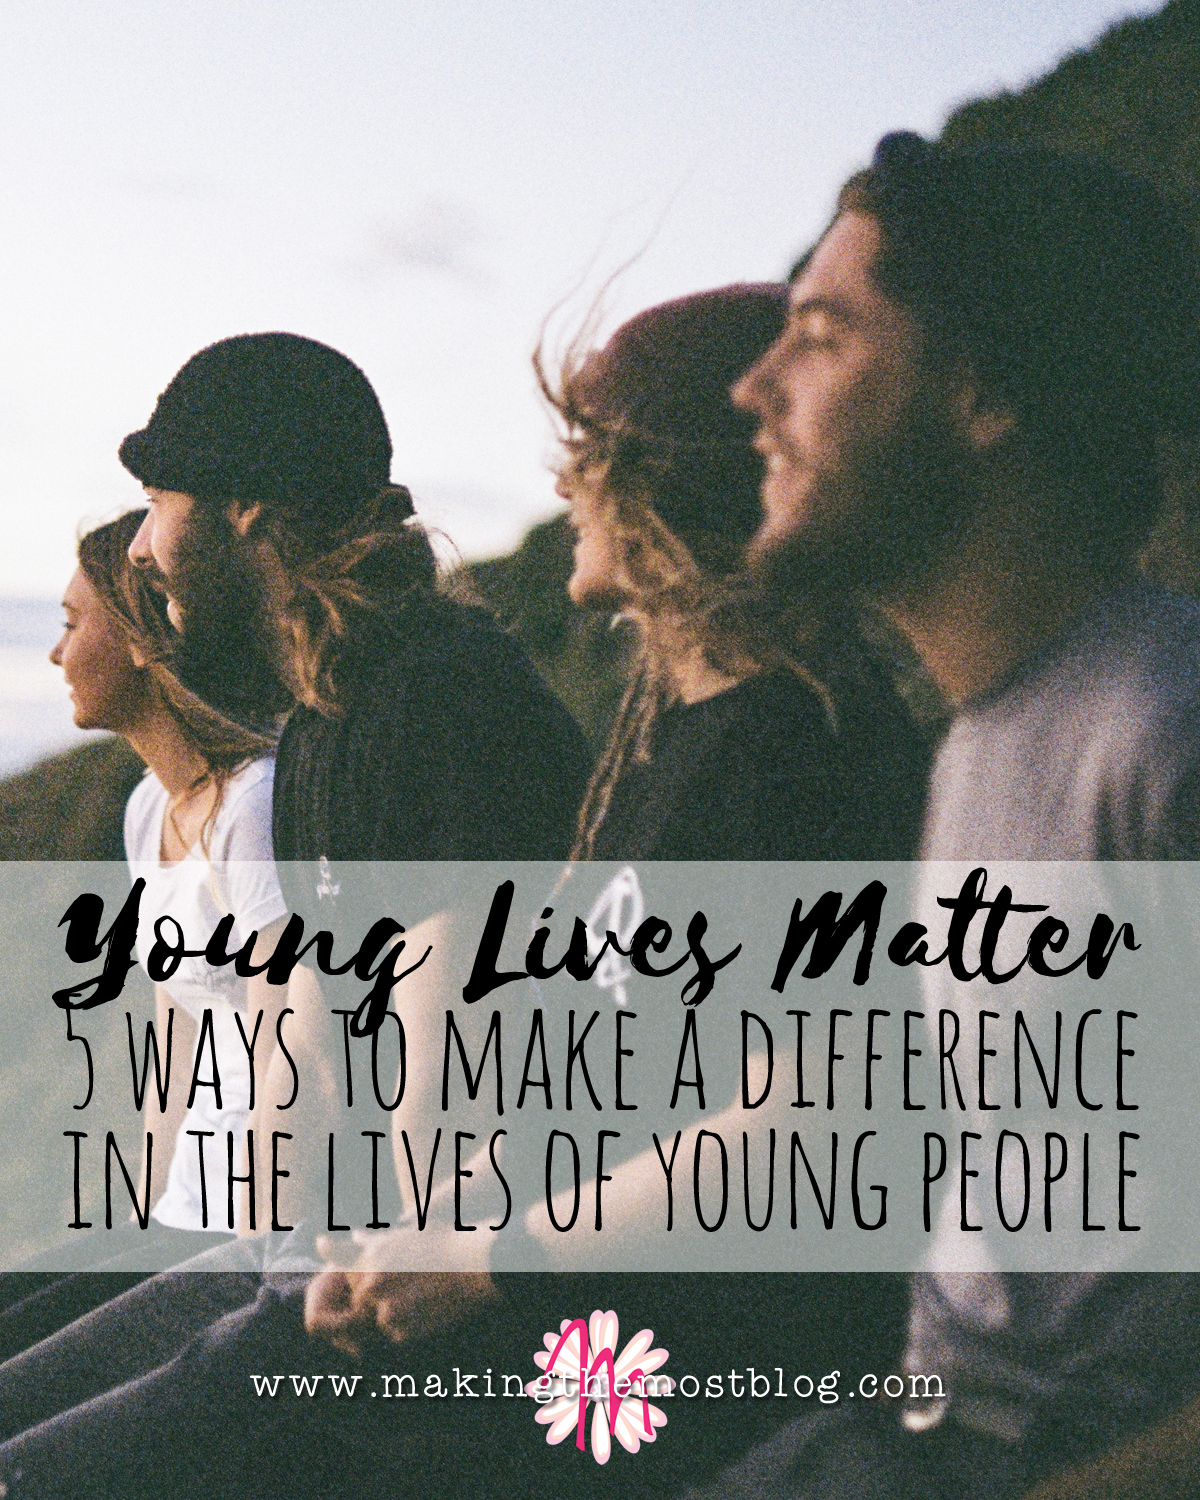 Young Lives Matter: 5 Ways to Make a Difference in the Lives of Young People | Making the Most Blog